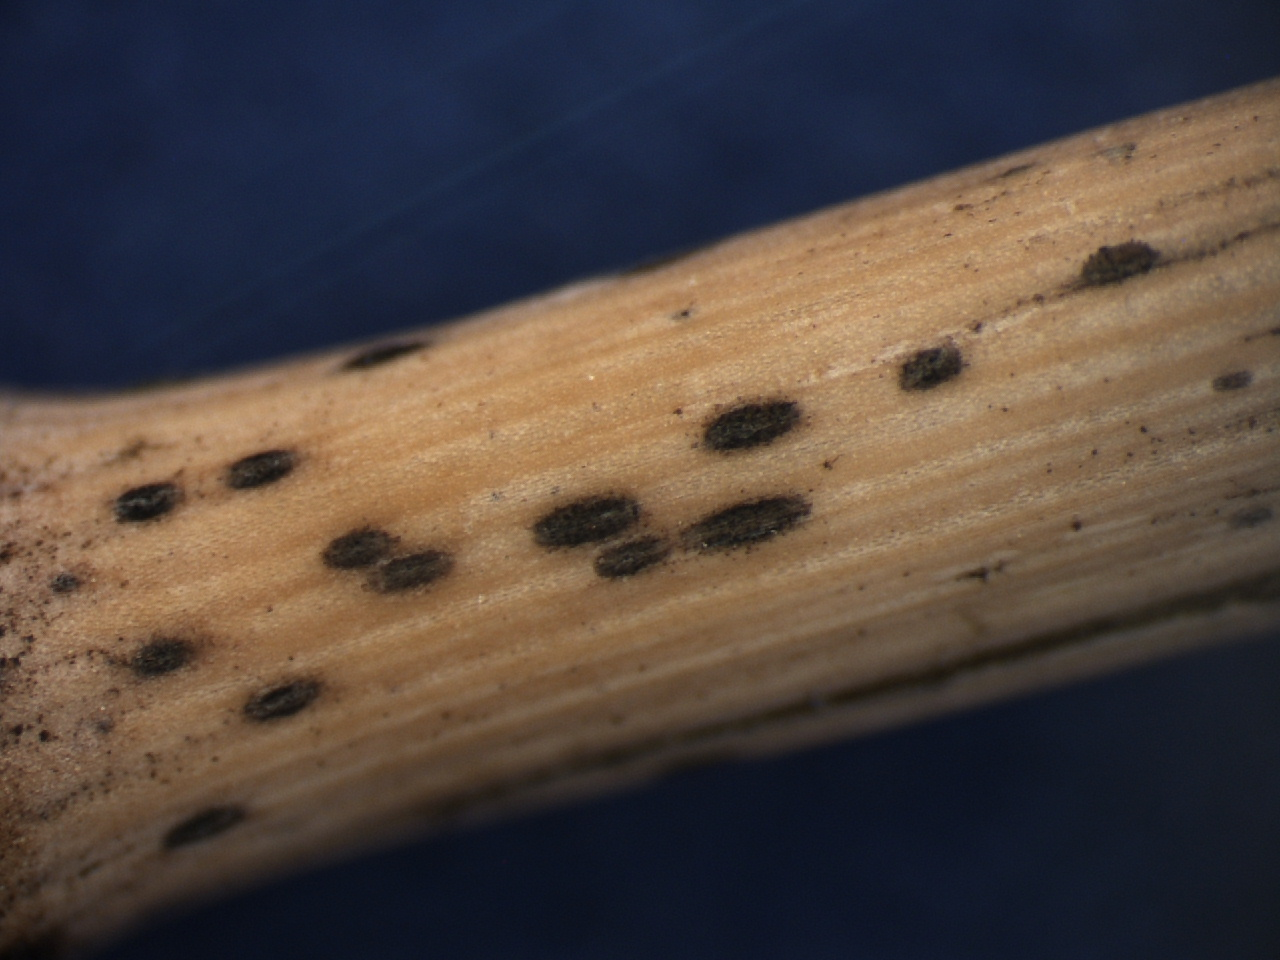 Dark, fungal reproductive structures produced by the pathogen that causes tan spot.